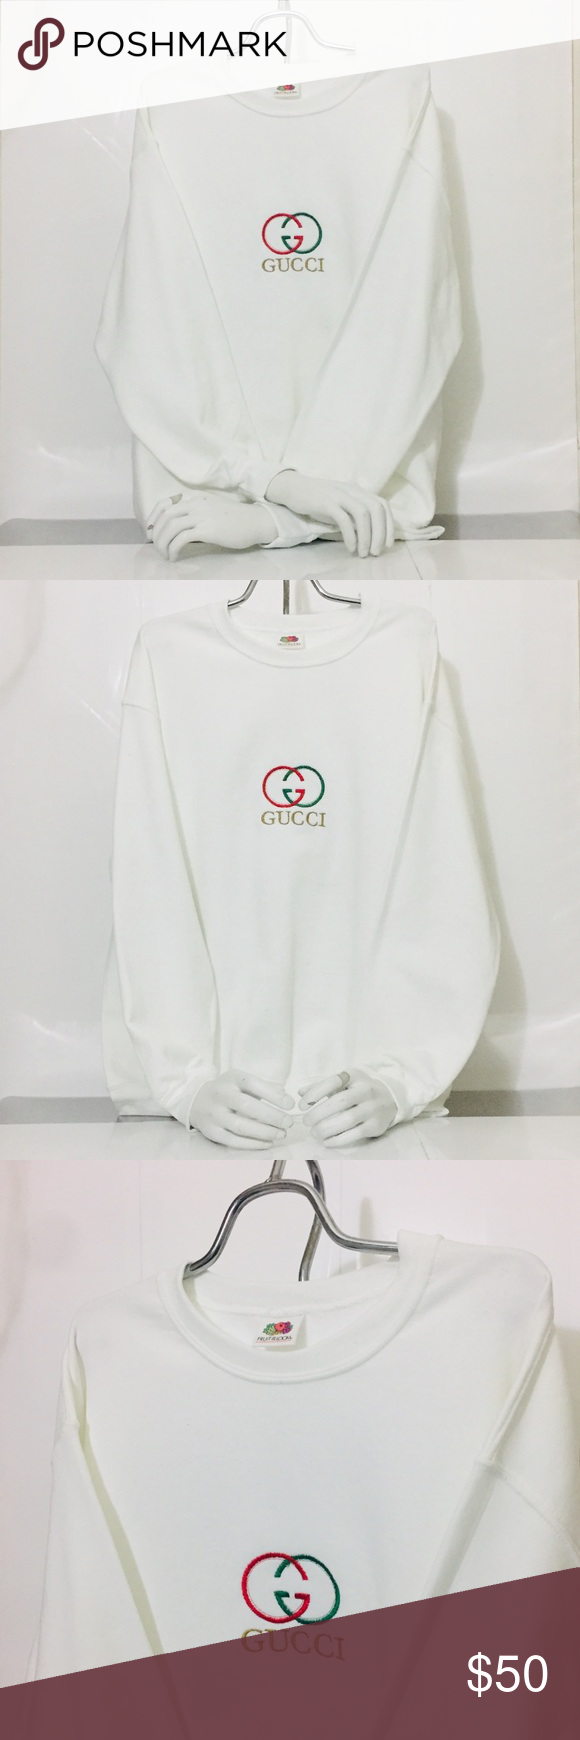 Vintage White Bootleg Gucci Embroidered Sweatshirt Embroidered Sweatshirts Sweatshirts White Vintage [ 1740 x 580 Pixel ]